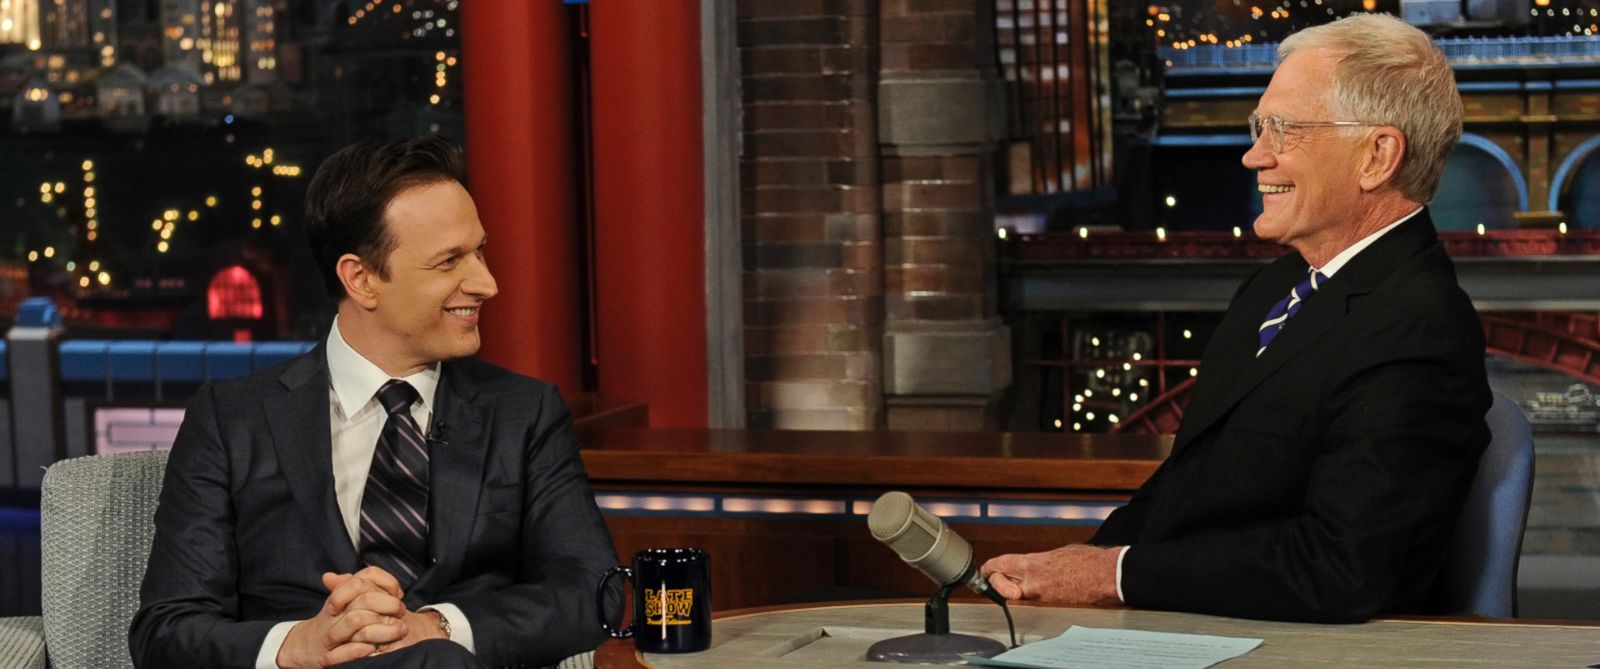 "PHOTO: Actor Josh Charles from the CBS drama series ""The Good Wife"" shares a laugh with Dave on the Late Show with David Letterman, March 24, 2014."